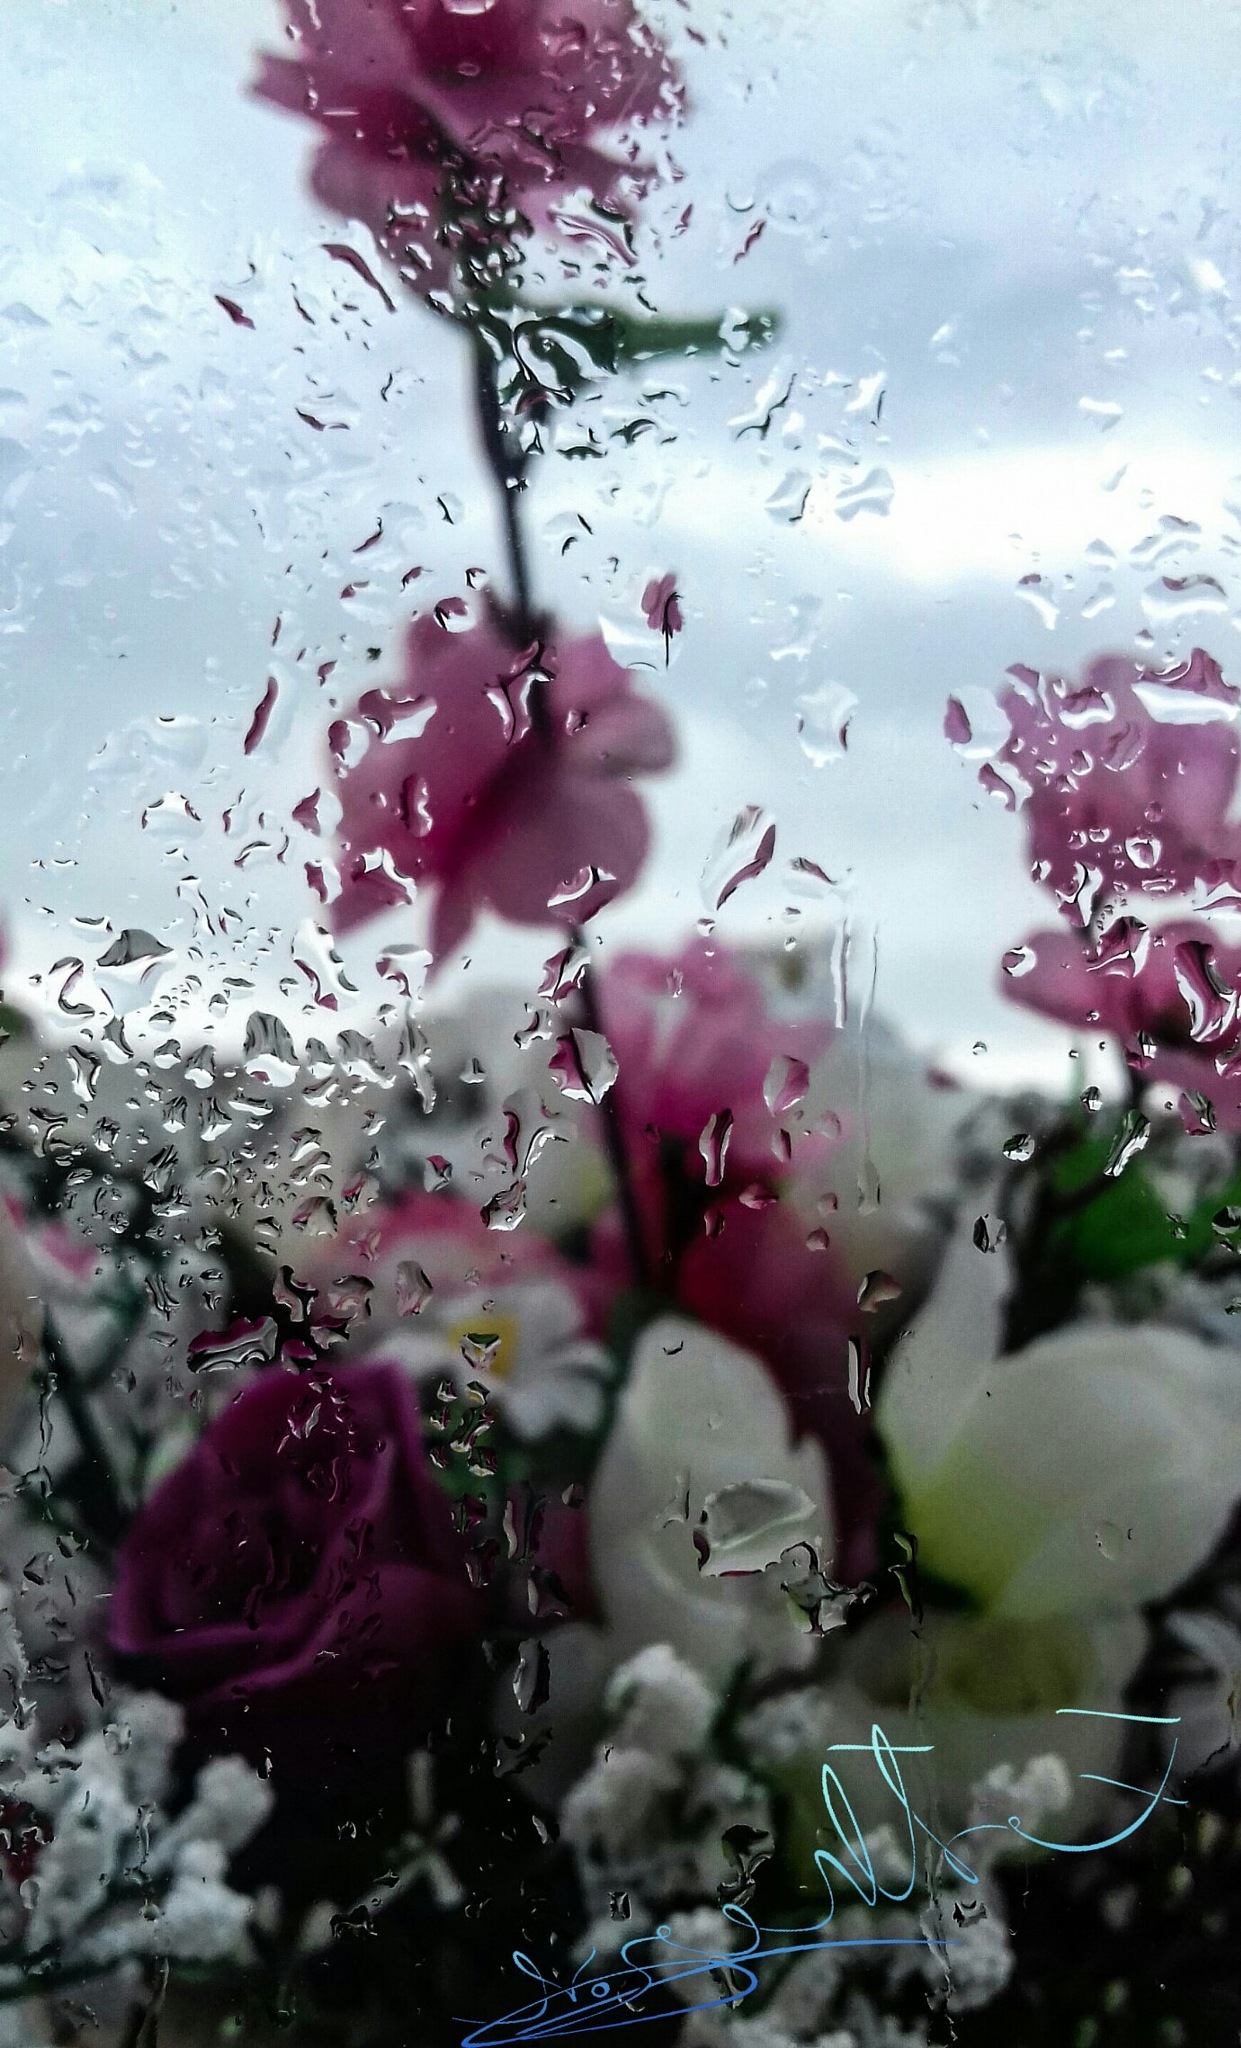 Rain on my Window by Esther Vos